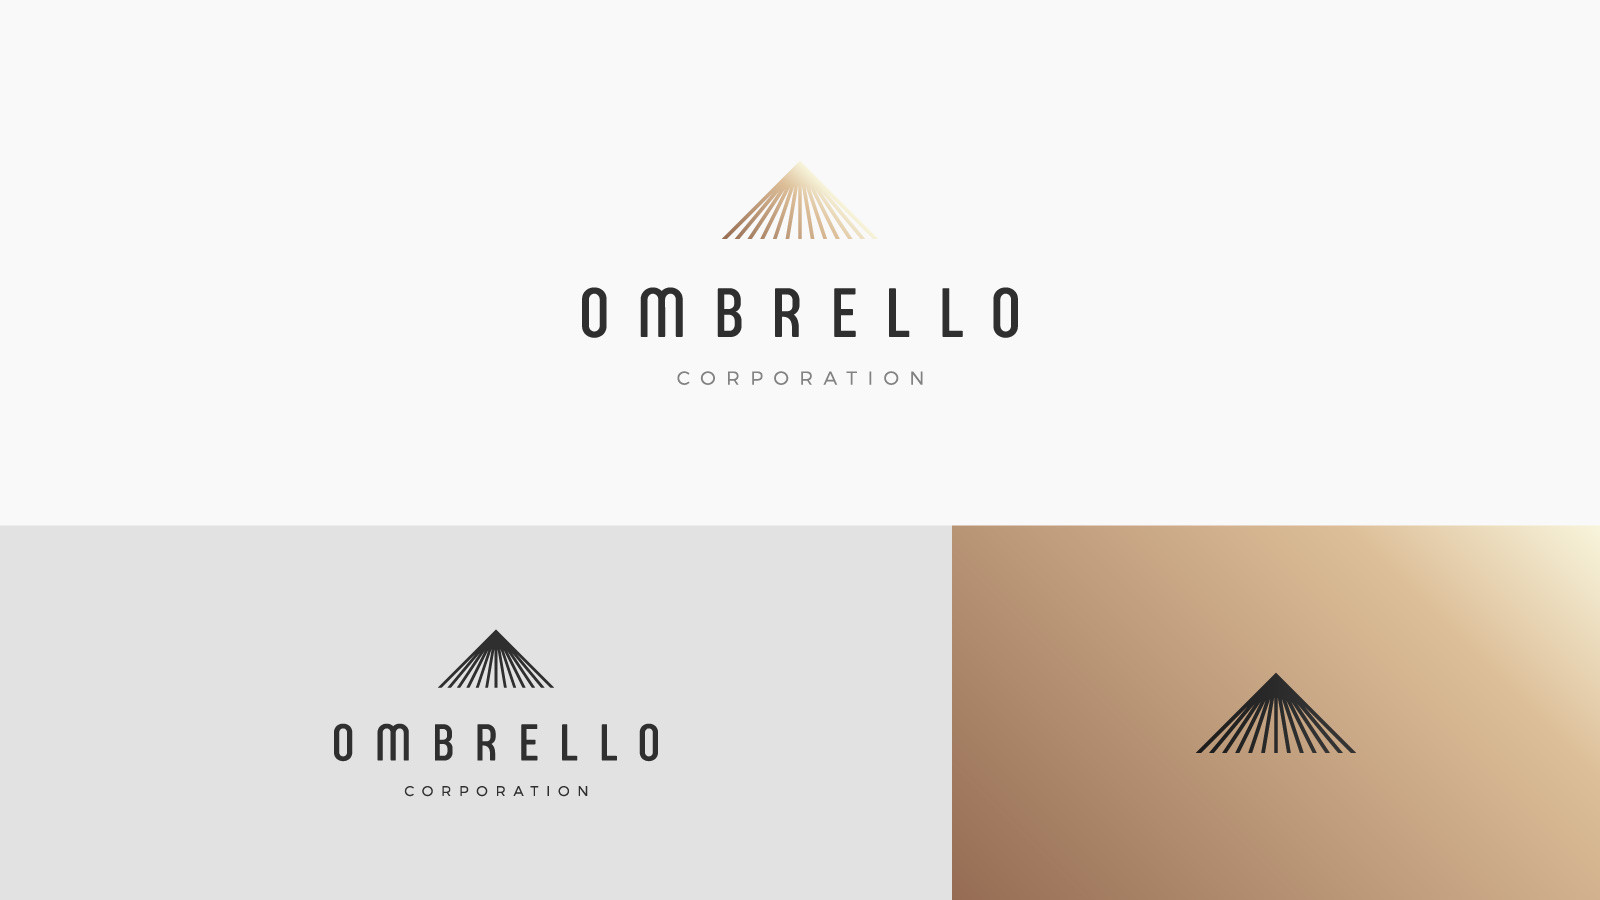 ombrello corporation logotipo variedad